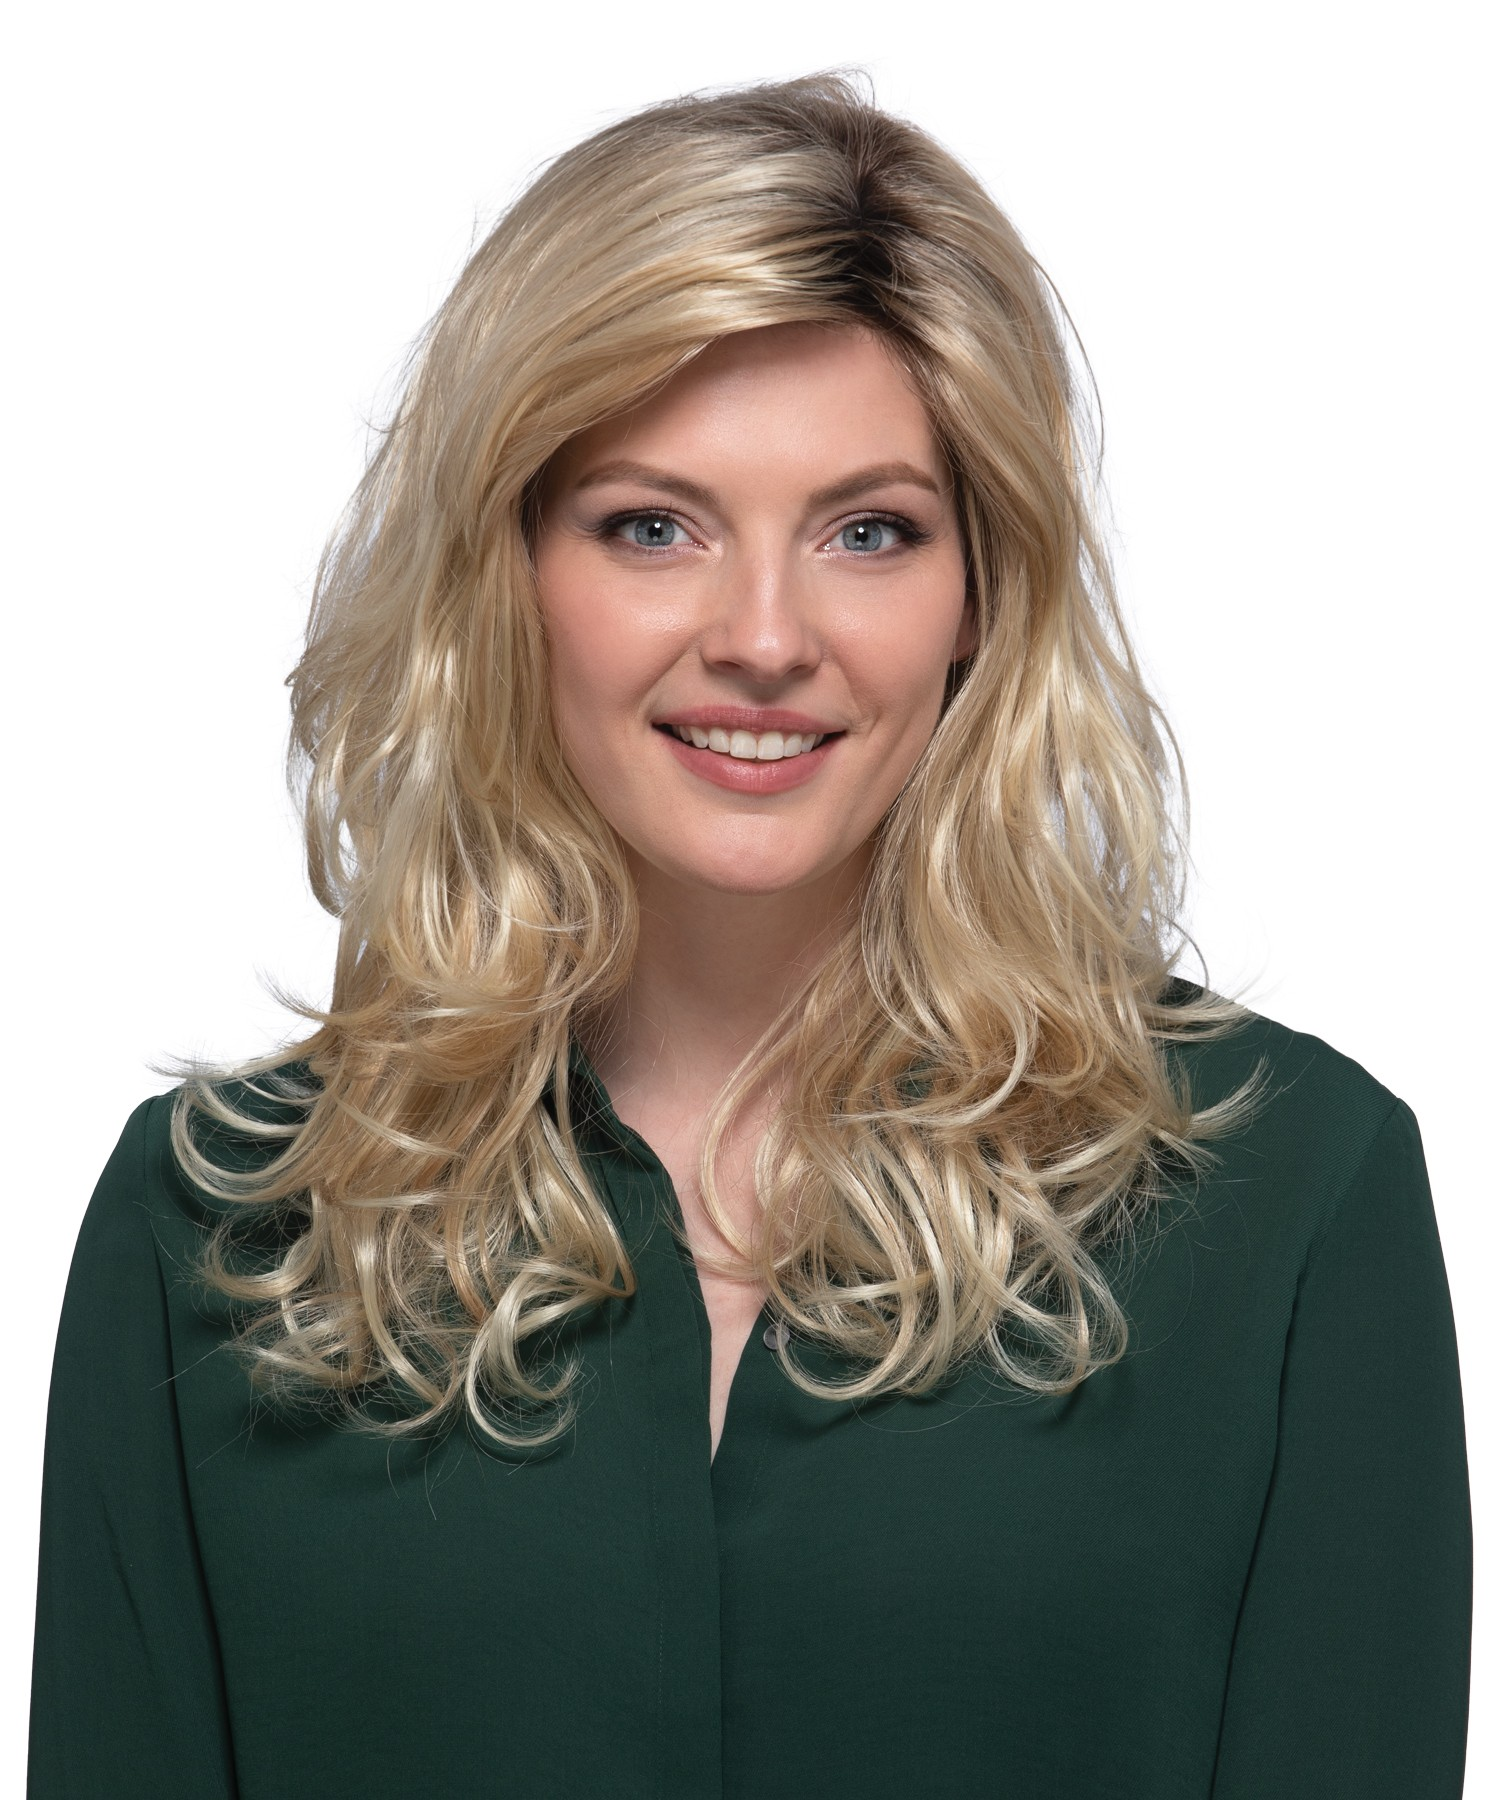 Petite Sedona_Front, Naturalle Collection by Estetica Designs Wigs, Color shown is RH26/613RT8